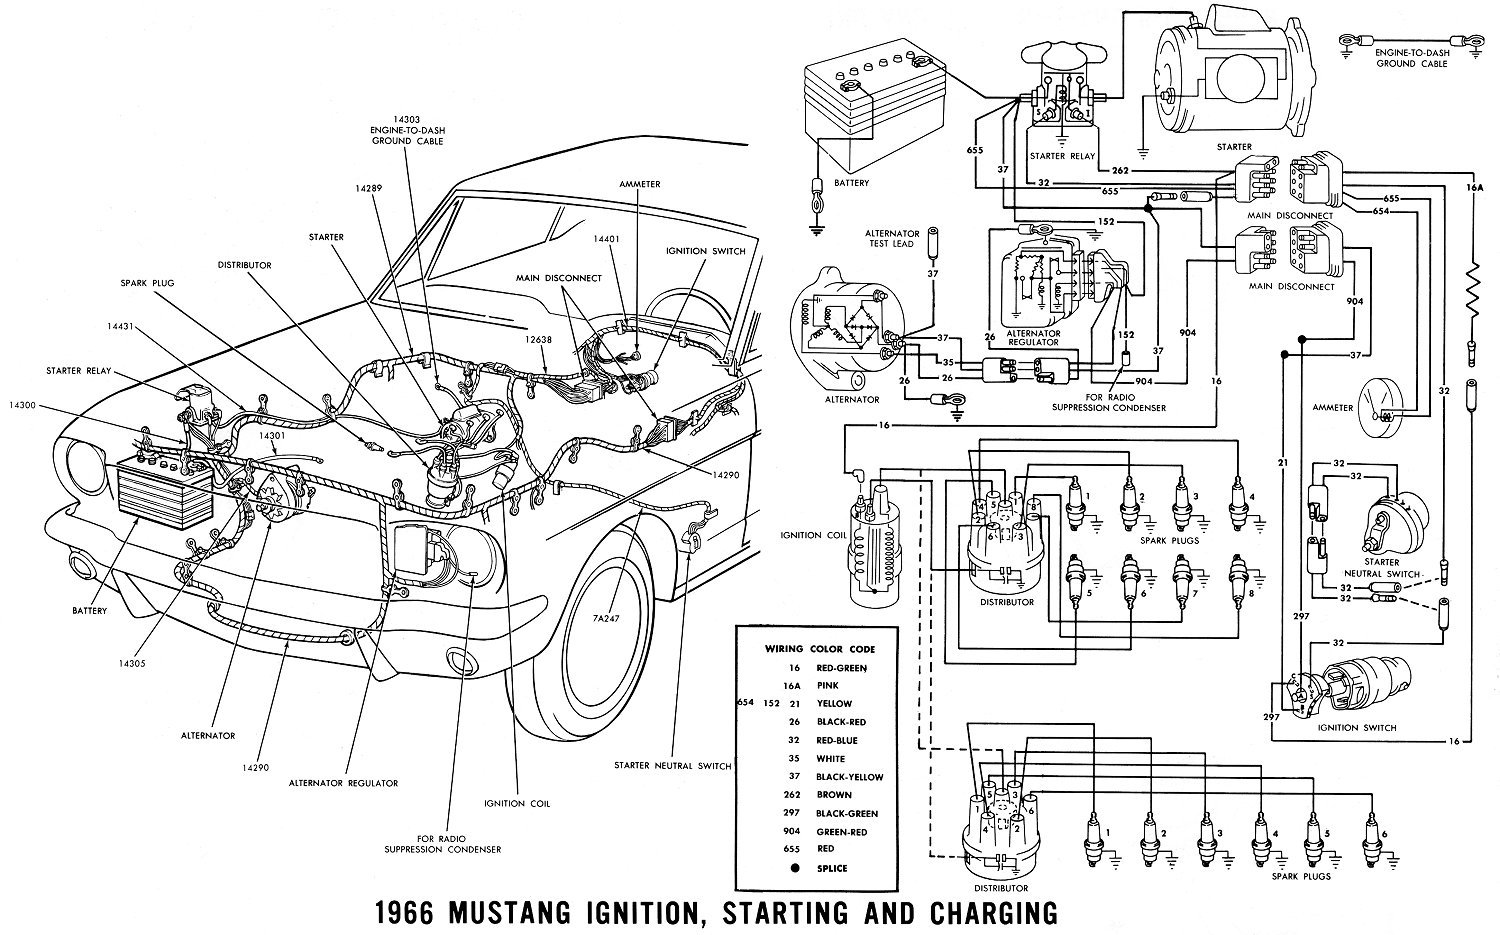 1966 mustang ignition switch diagram what pins are 66ignitjpg